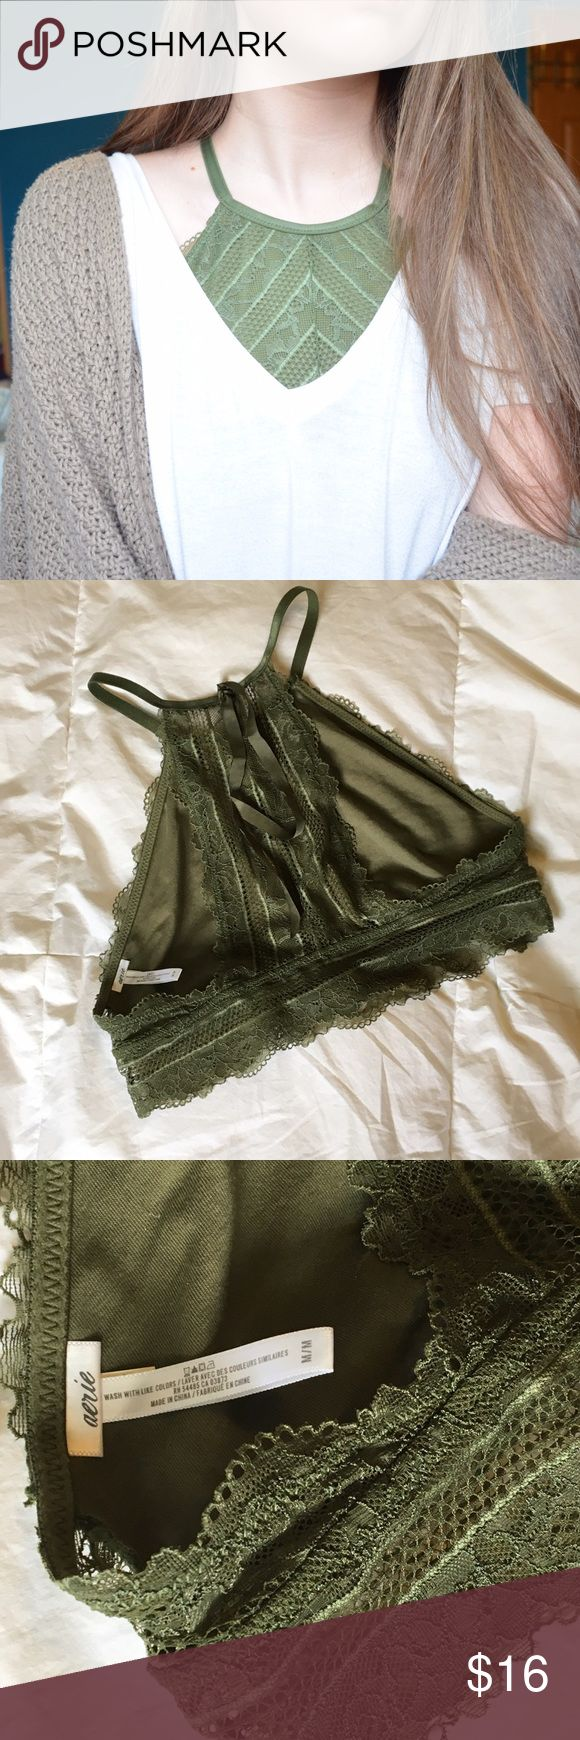 Aerie Green Lace High Neck Bralette EUC, this bralette is super dainty & 2die4. Size M, fits around 34-36 A-D(?). There is a lot of fabric on the front, so it can fit bigger cup sizes (I'm an A and just wear a strapless bra under). Little ribbons in back, love the look but I have trouble finding what to wear with it. Pair with some green socks & birks to be xtra daring. aerie Intimates & Sleepwear Bras